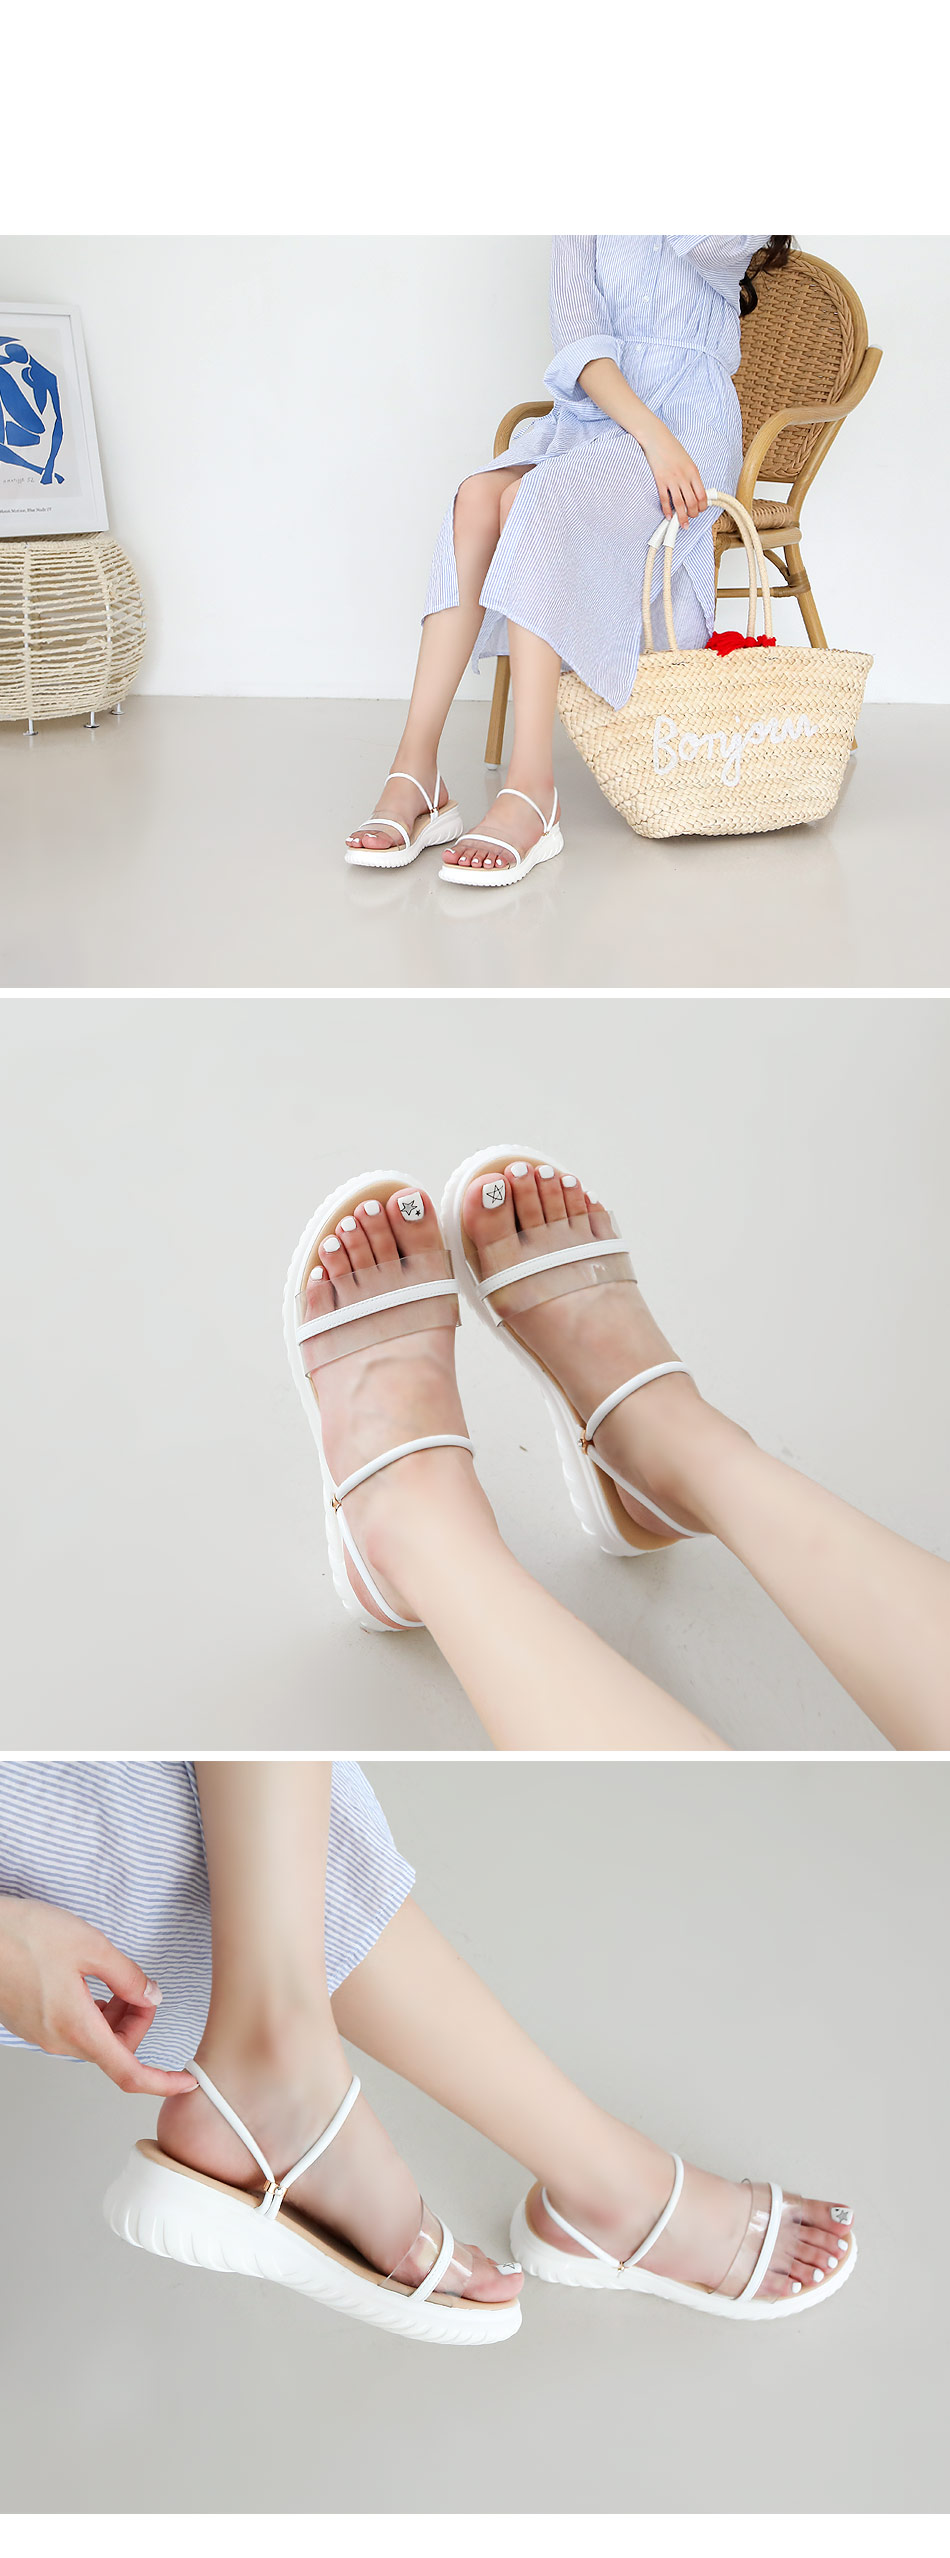 Cellia Twoway Sandals 4cm